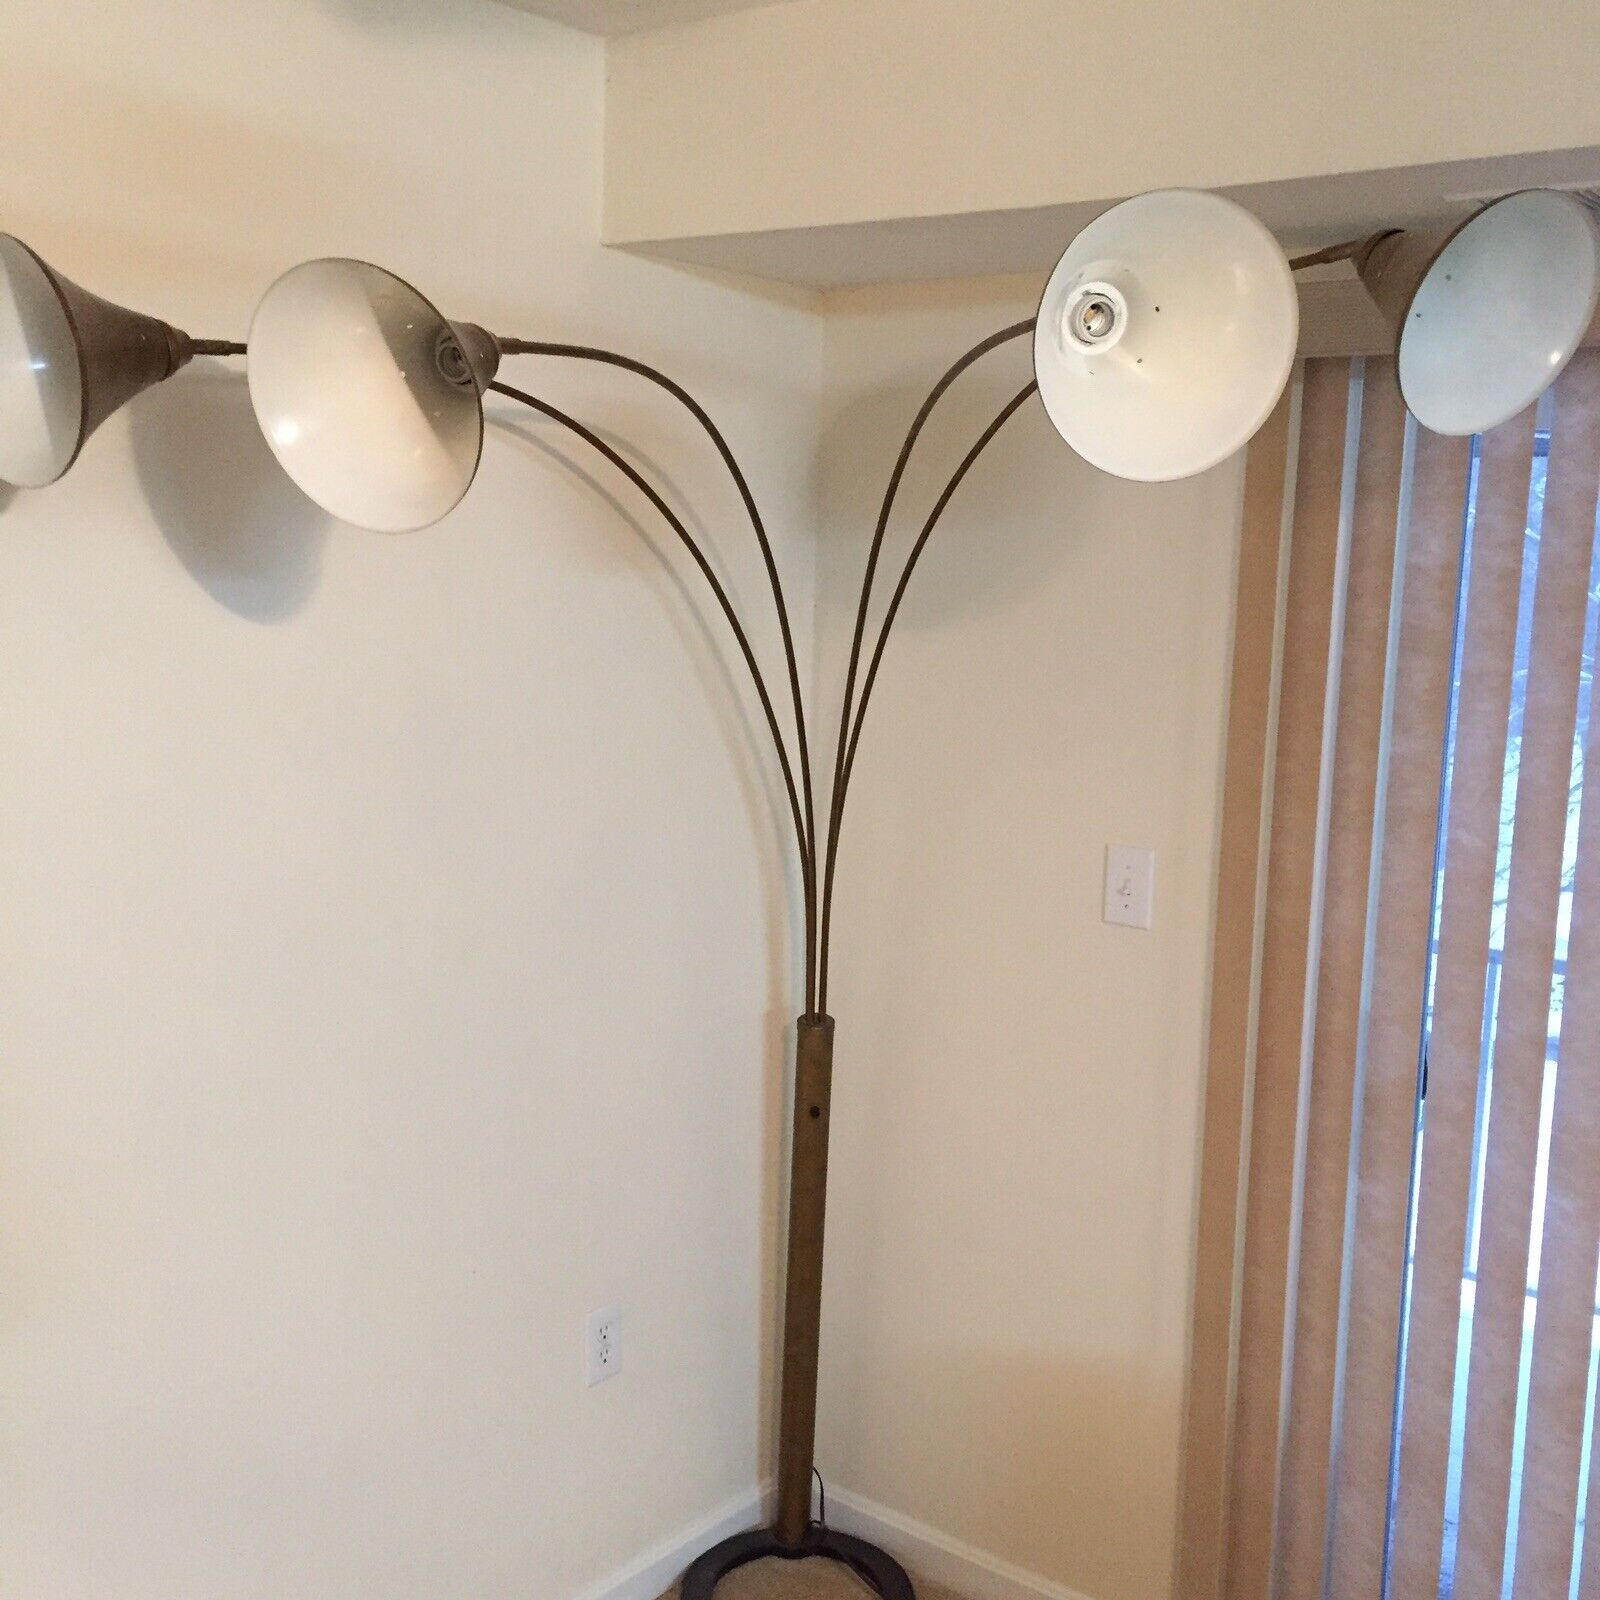 4 Arm Rustic Floor Lamp